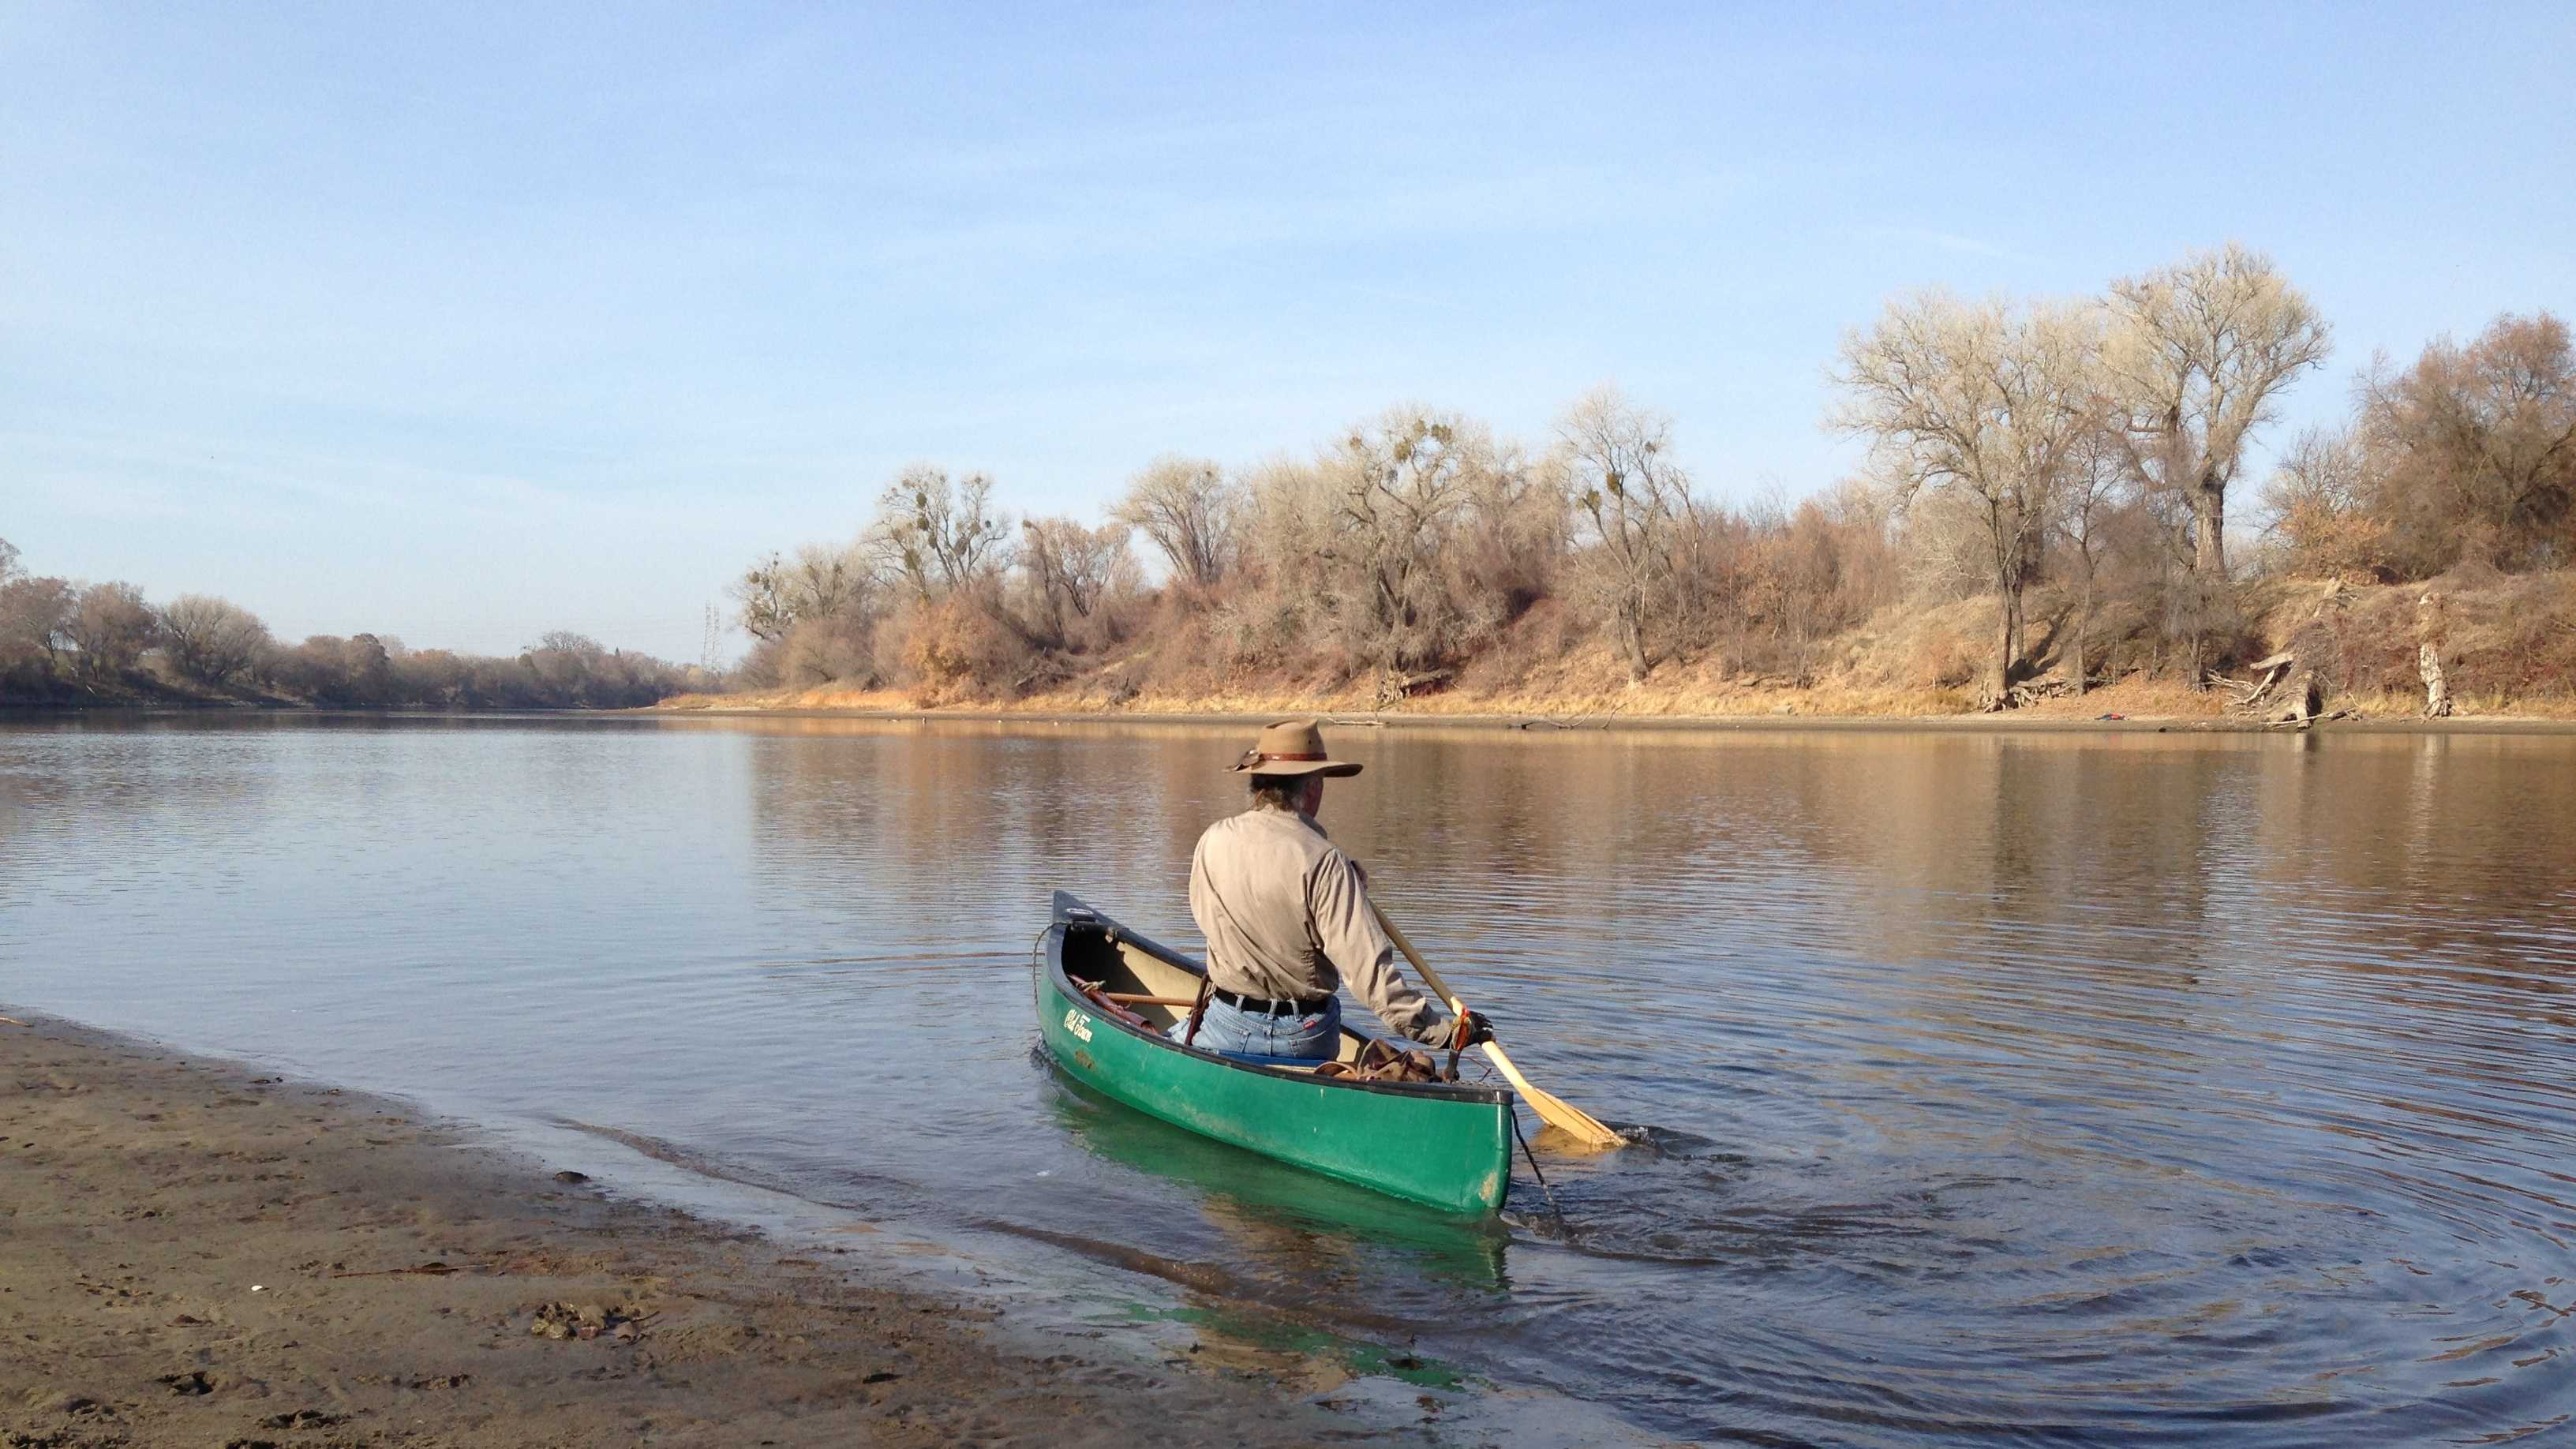 Canoeist Darrell Stone says the low level of the American River causes him to bottom out.